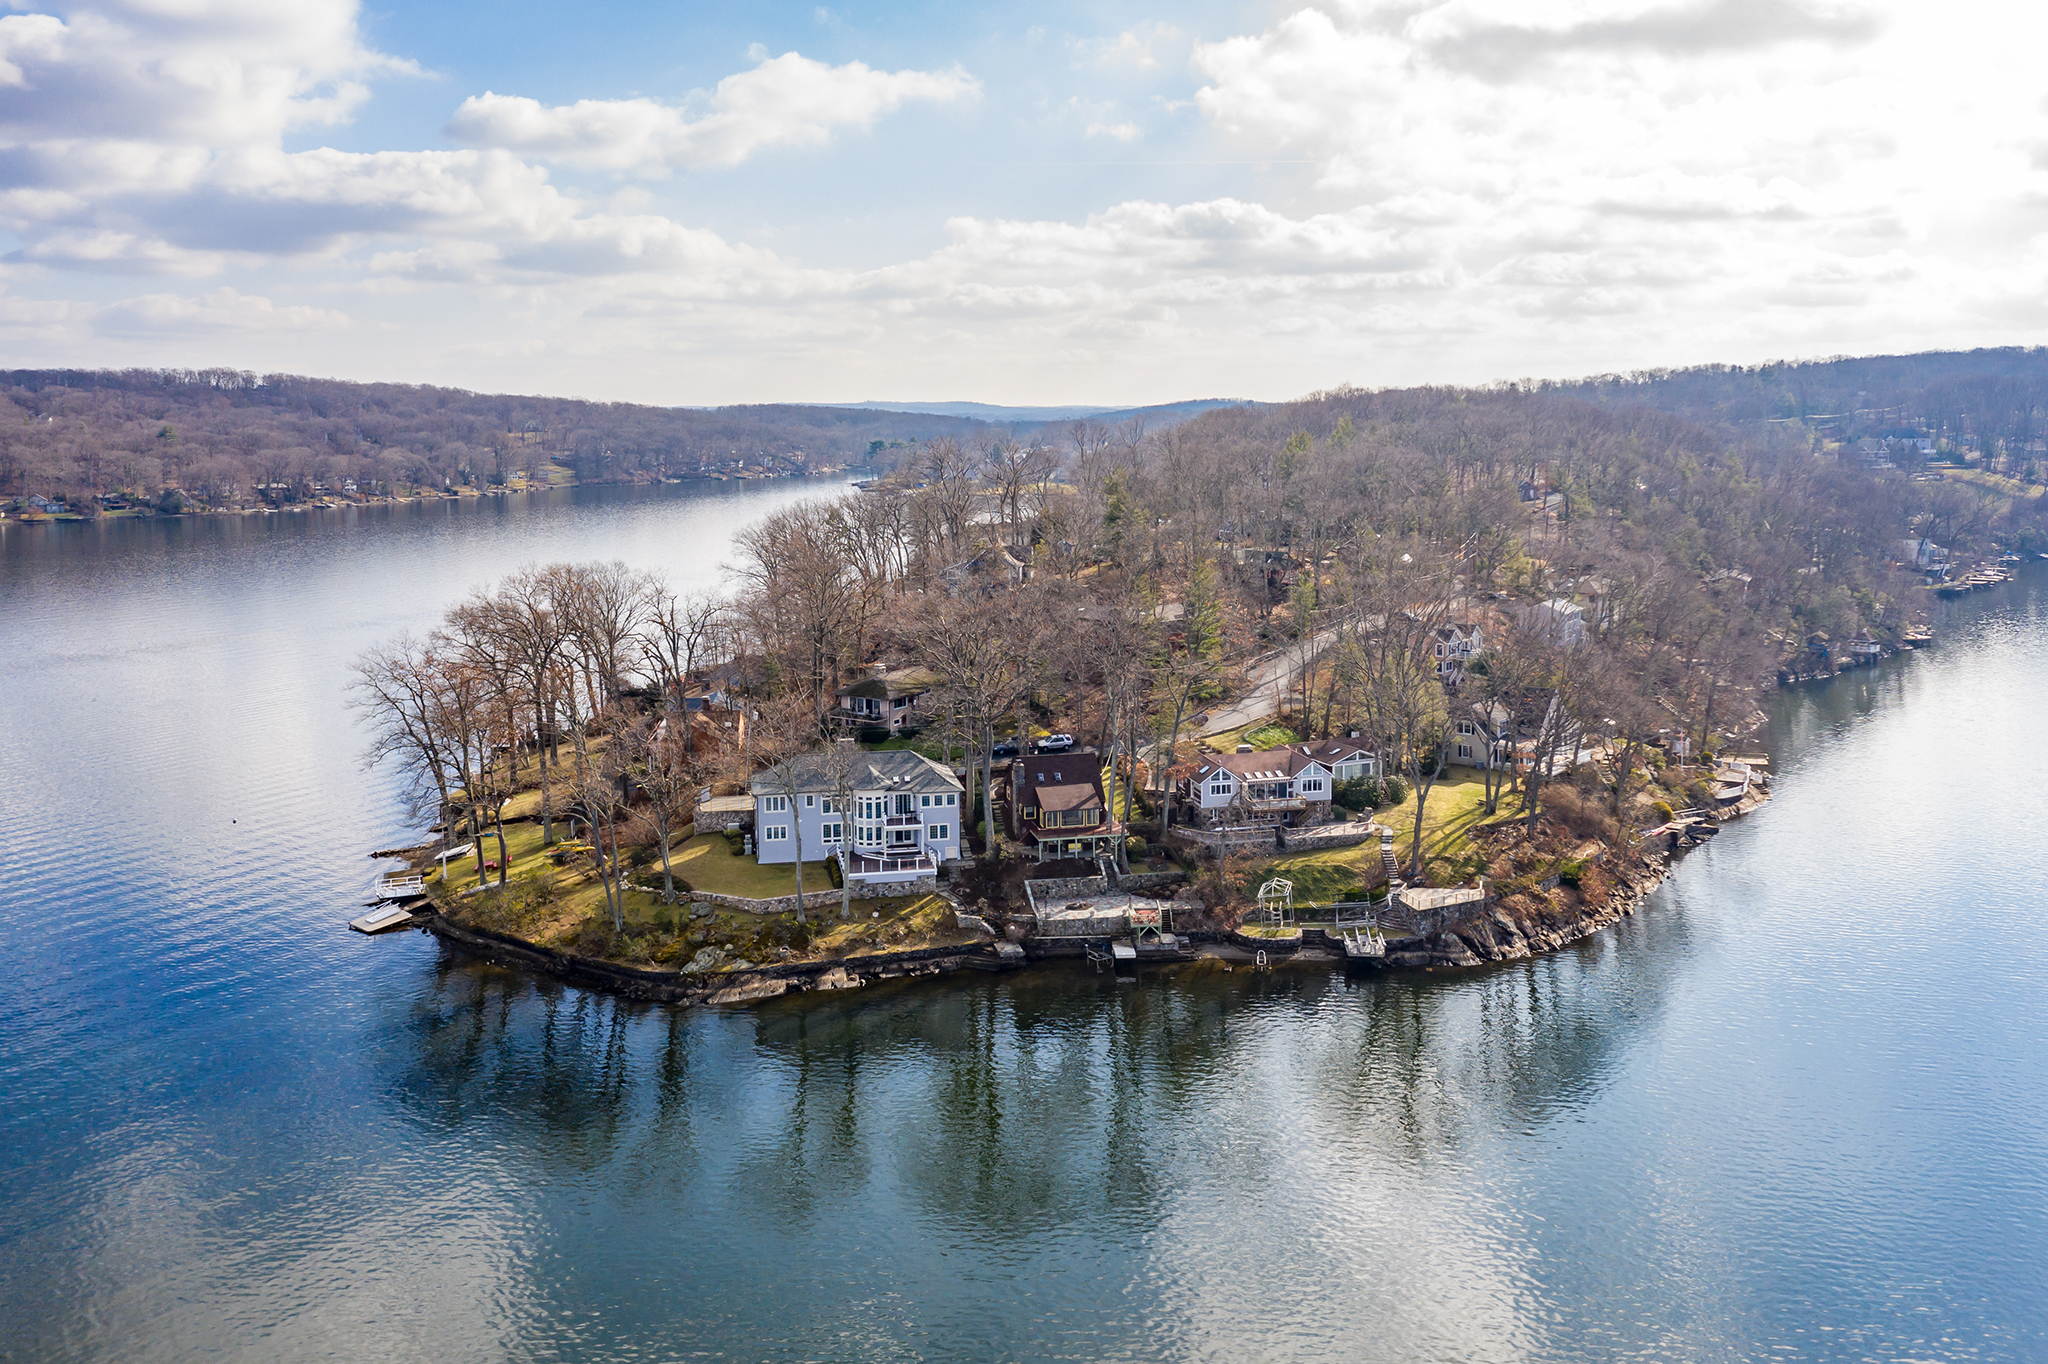 Amazing Panoramic View of Candlewood Lake